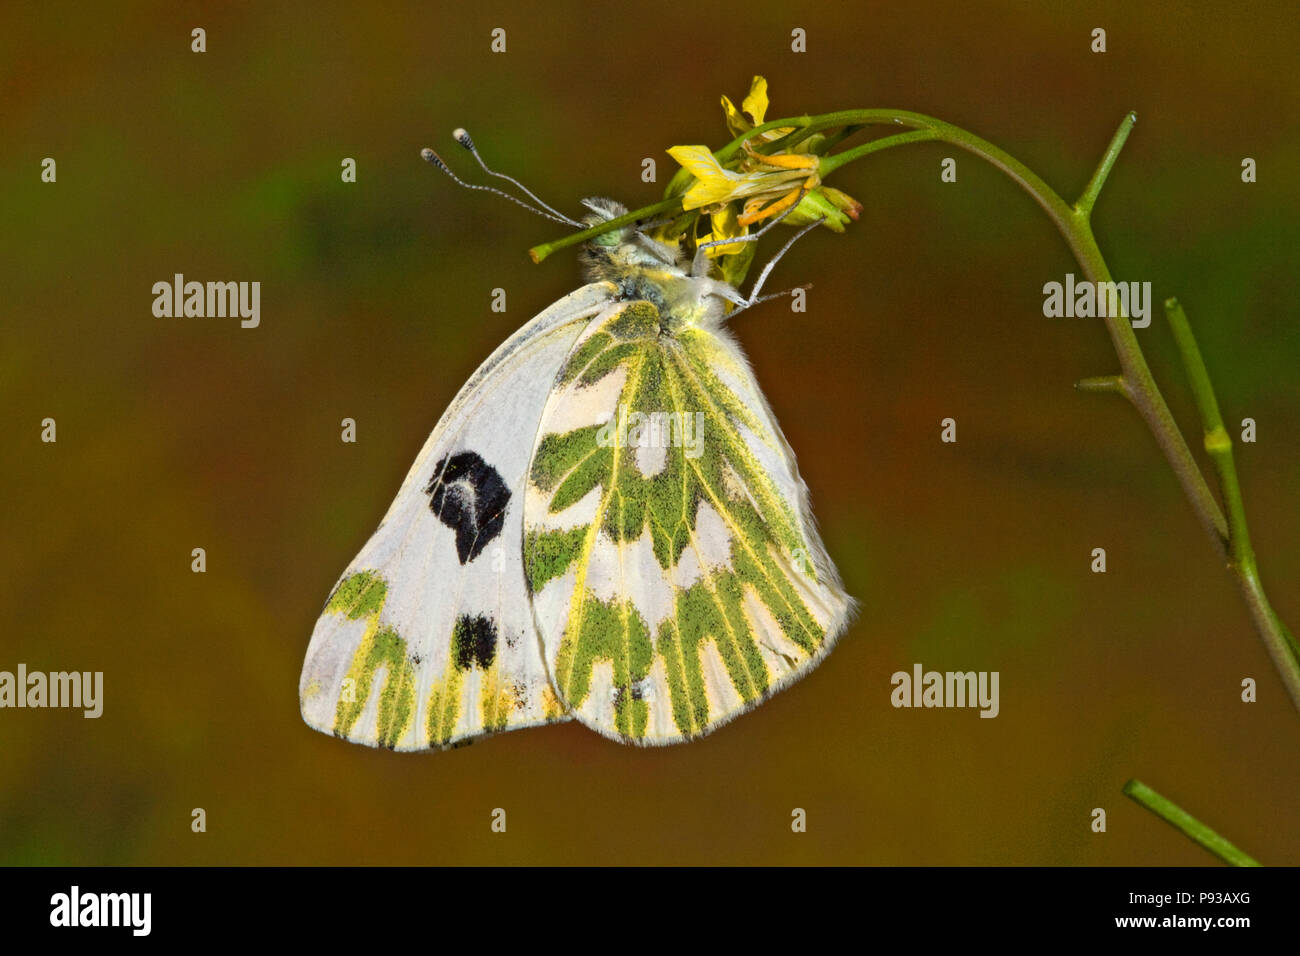 A Becker's White butterfly, Pontia beckerii, on a wildflower in thigh desert of central Oregon. - Stock Image